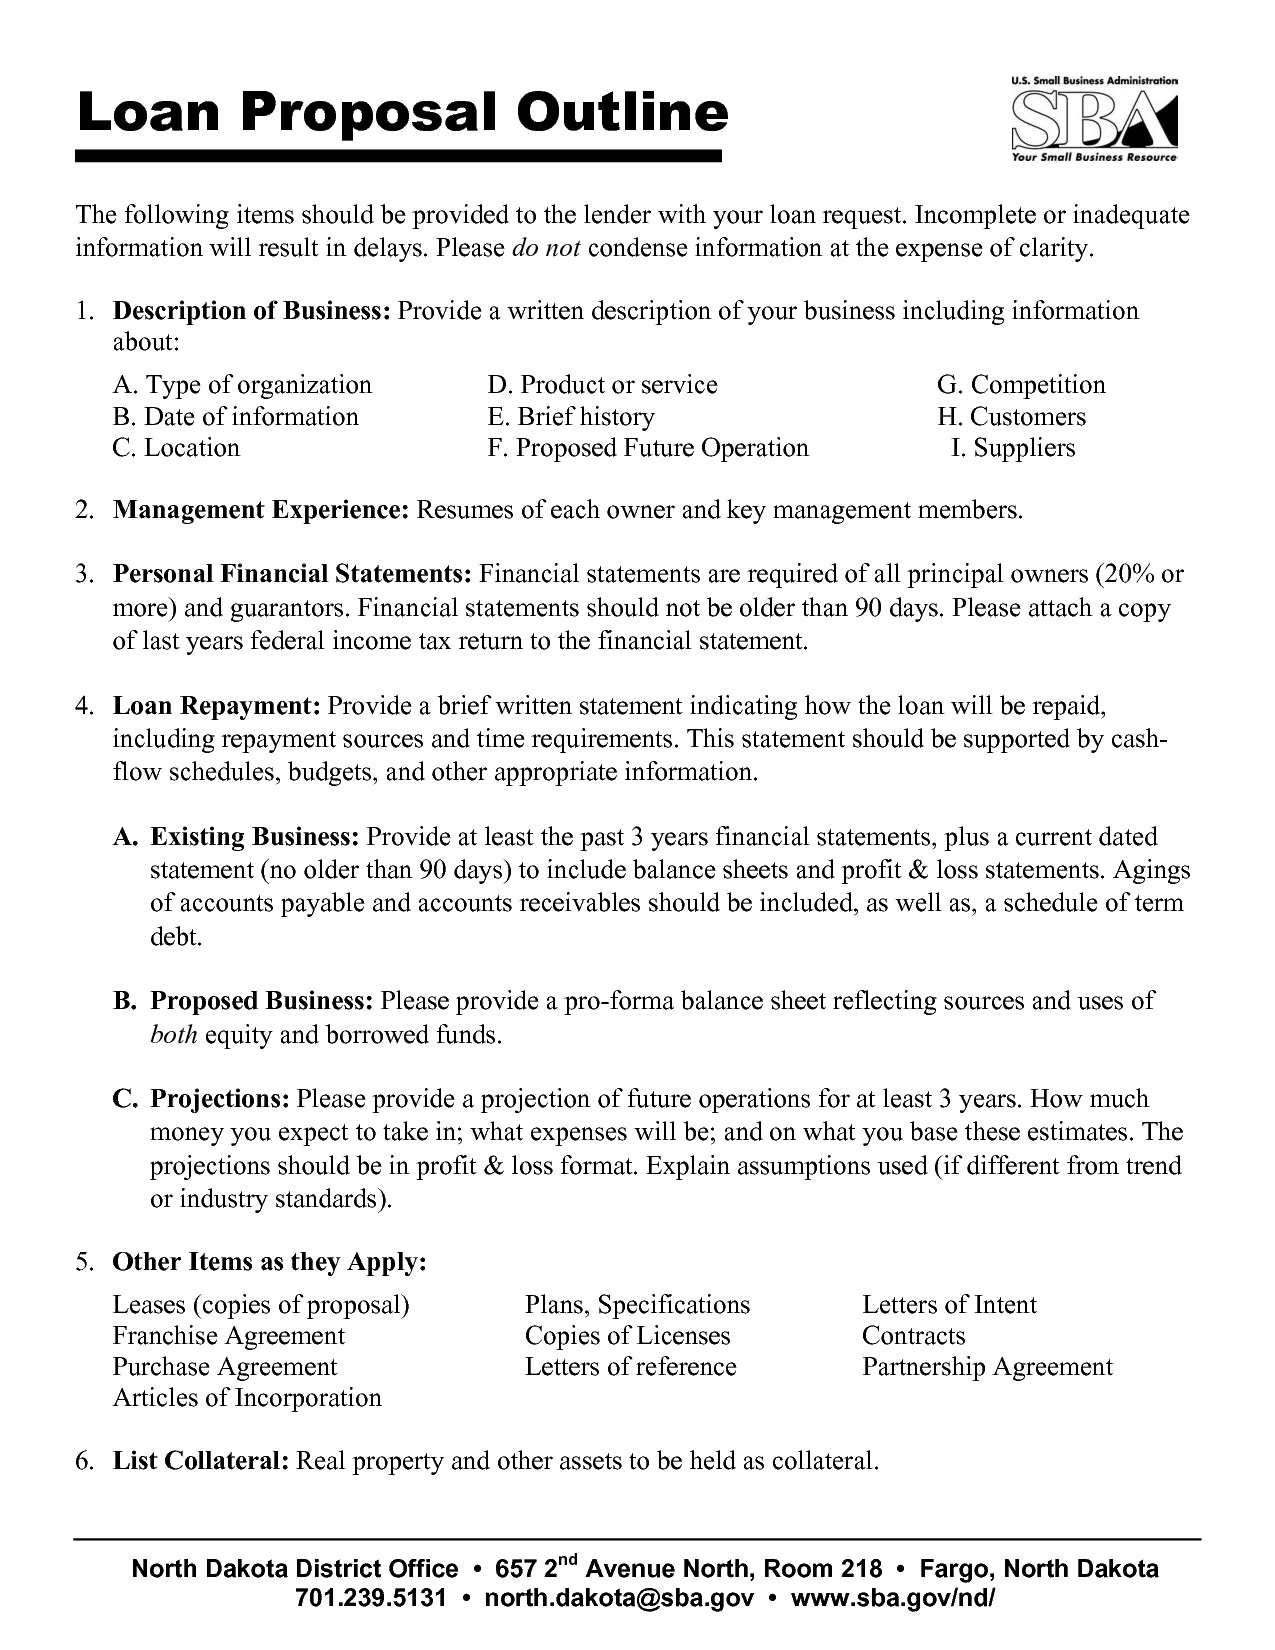 21 Business Plan Template For Franchise Mortgage Branch Businessn Loan Ficer Pdf Originator Small Business Plan Template Proposal Letter Business Plan Template